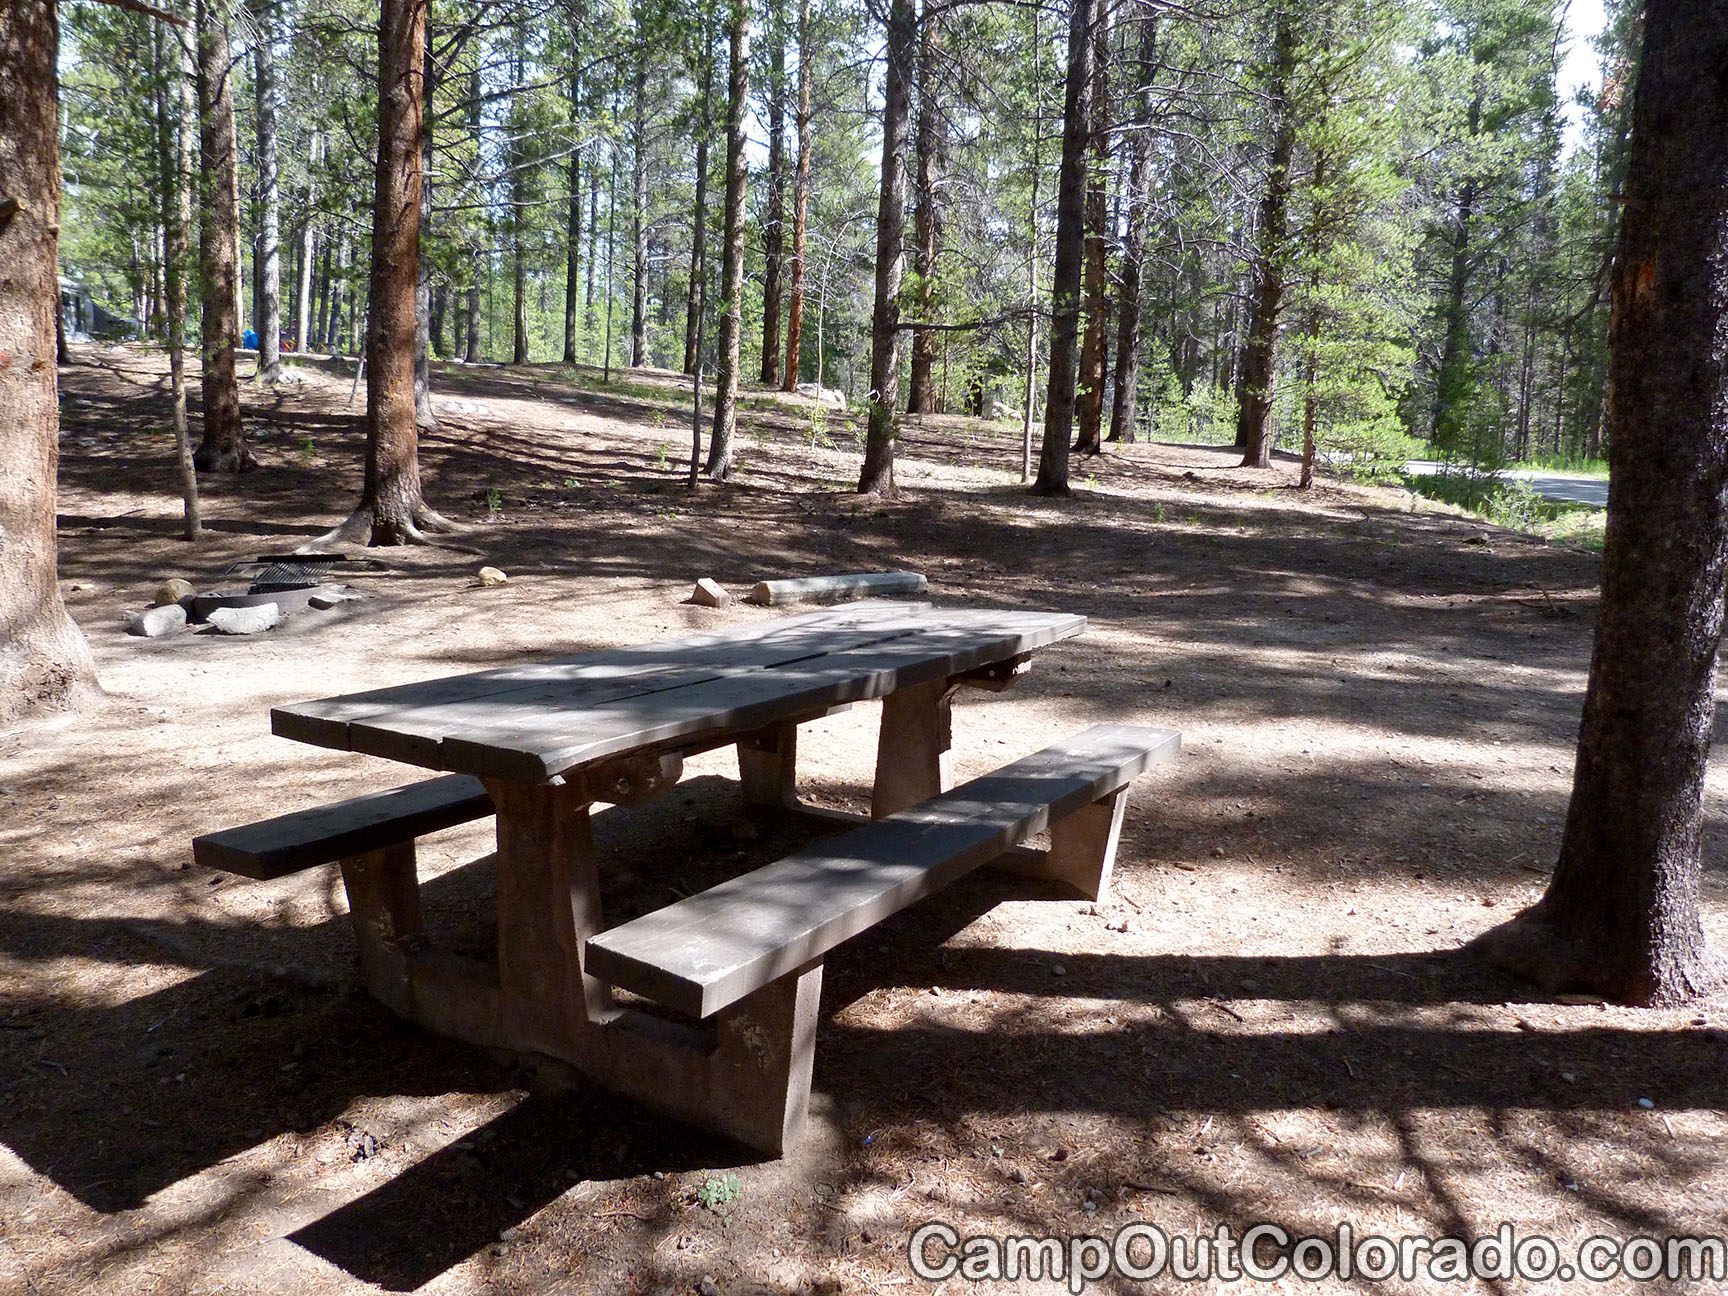 Camp-out-colorado-silver-dollar-turquoise-table